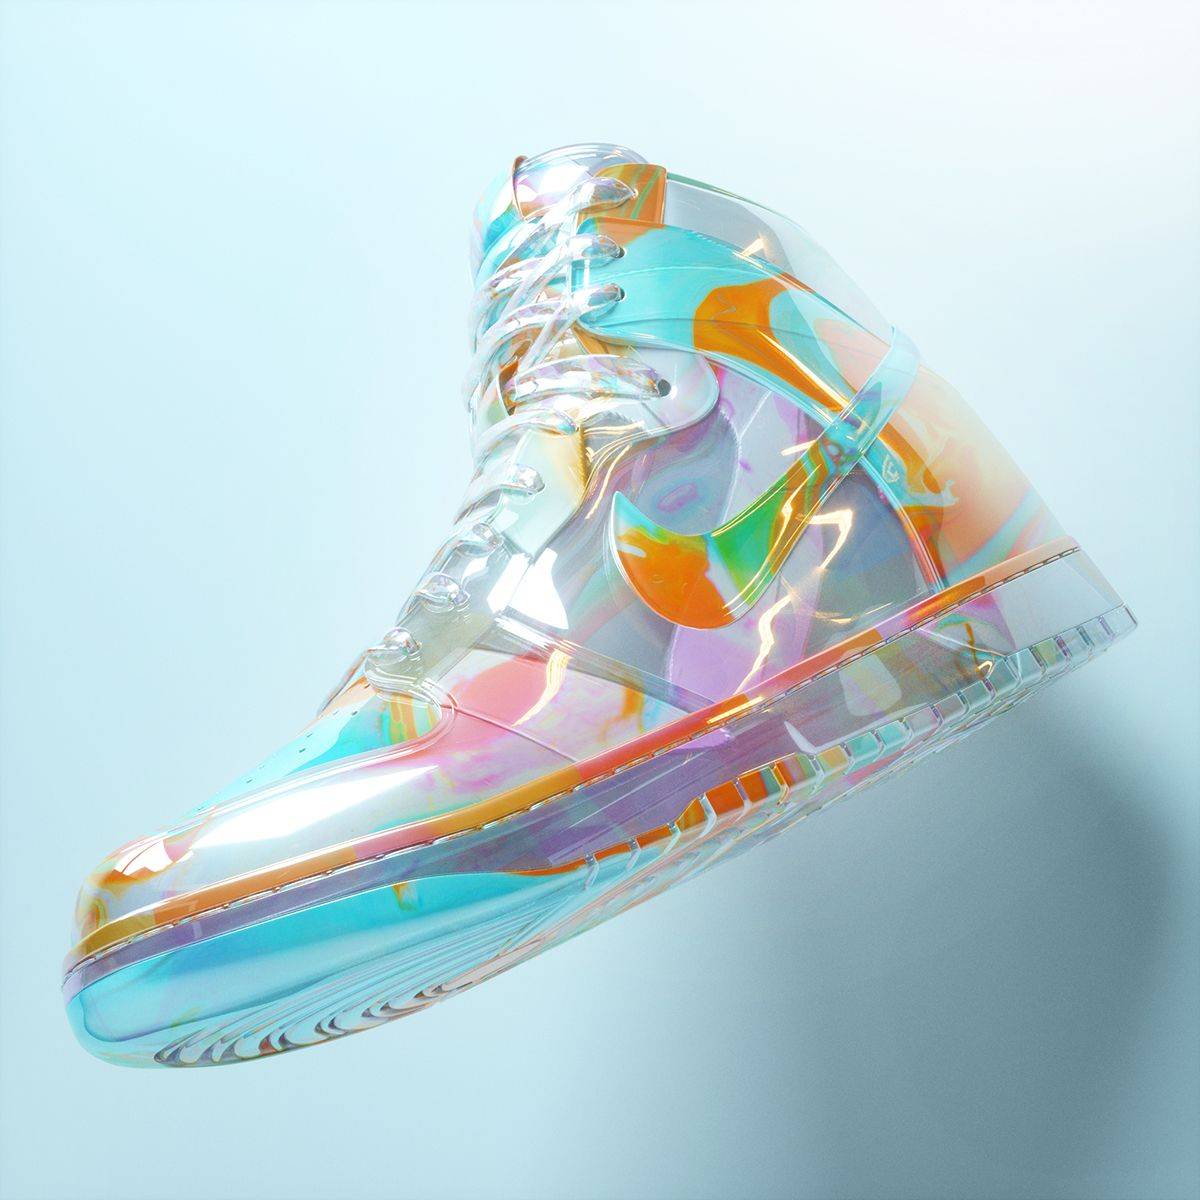 DIY HolographicIridescent Shoes! Adidas Inspired!